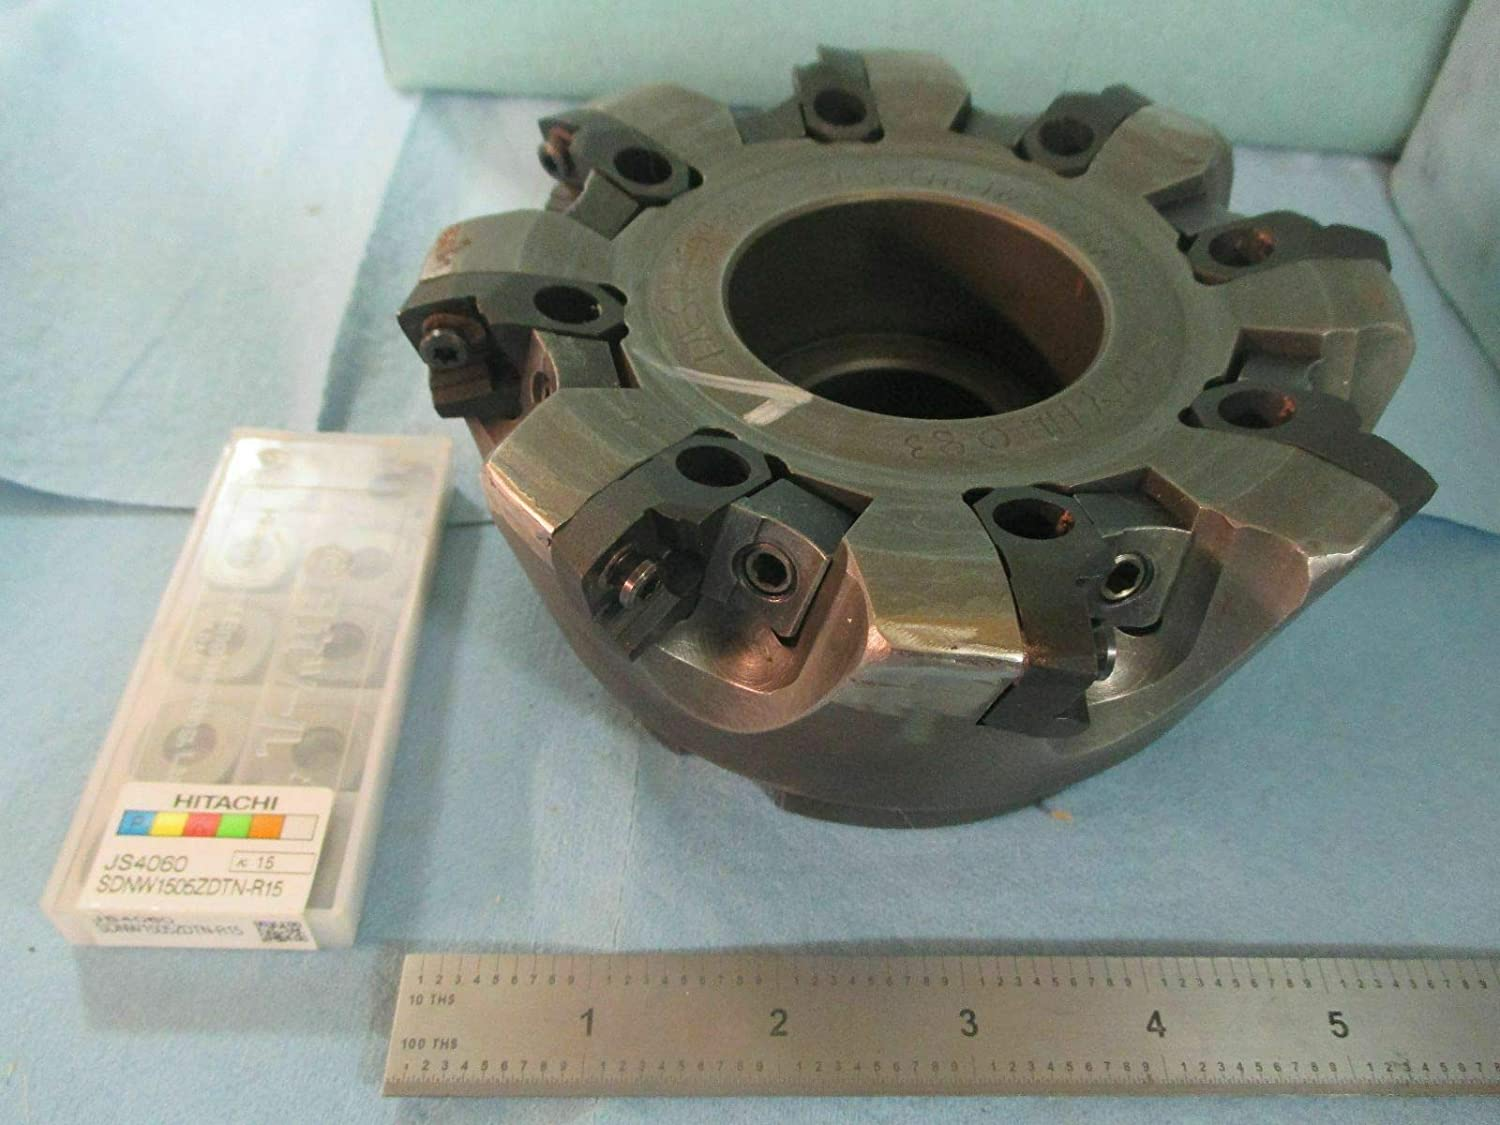 HITACHI NYHL 083 6 DIA FACE MILL WITH 10PCS SDNW 1505 ZDTN R15 INSERTS TO FIT